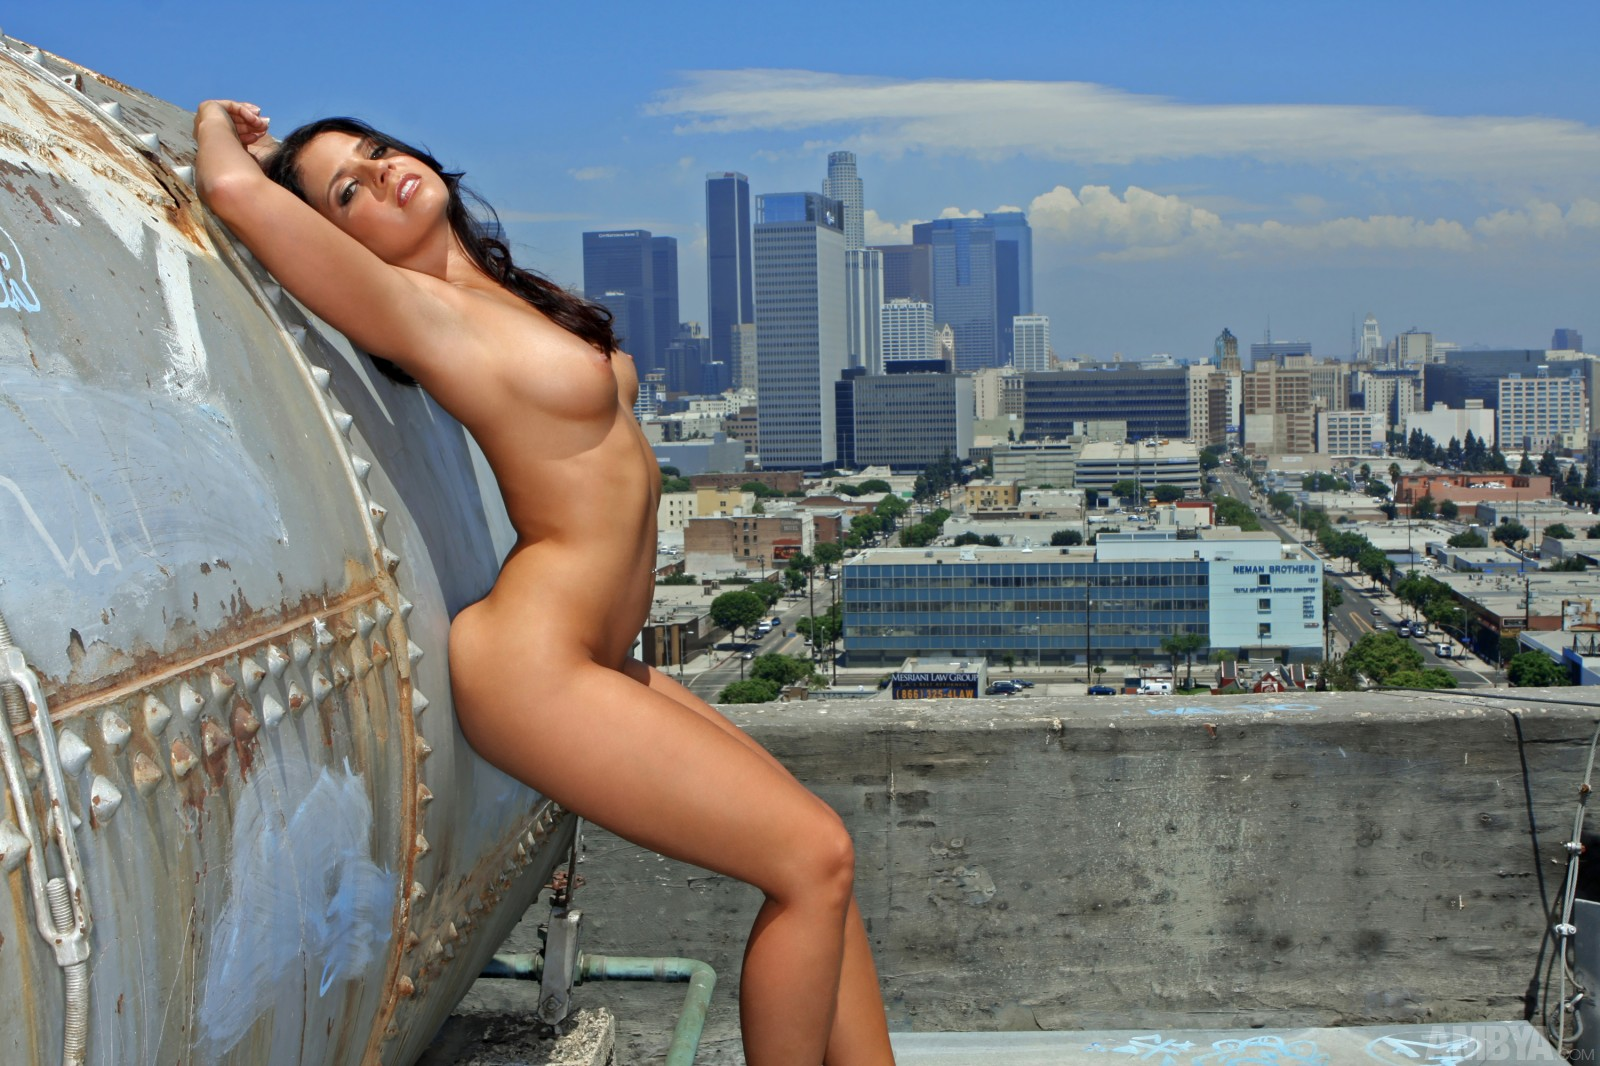 Nude girls in city opinion